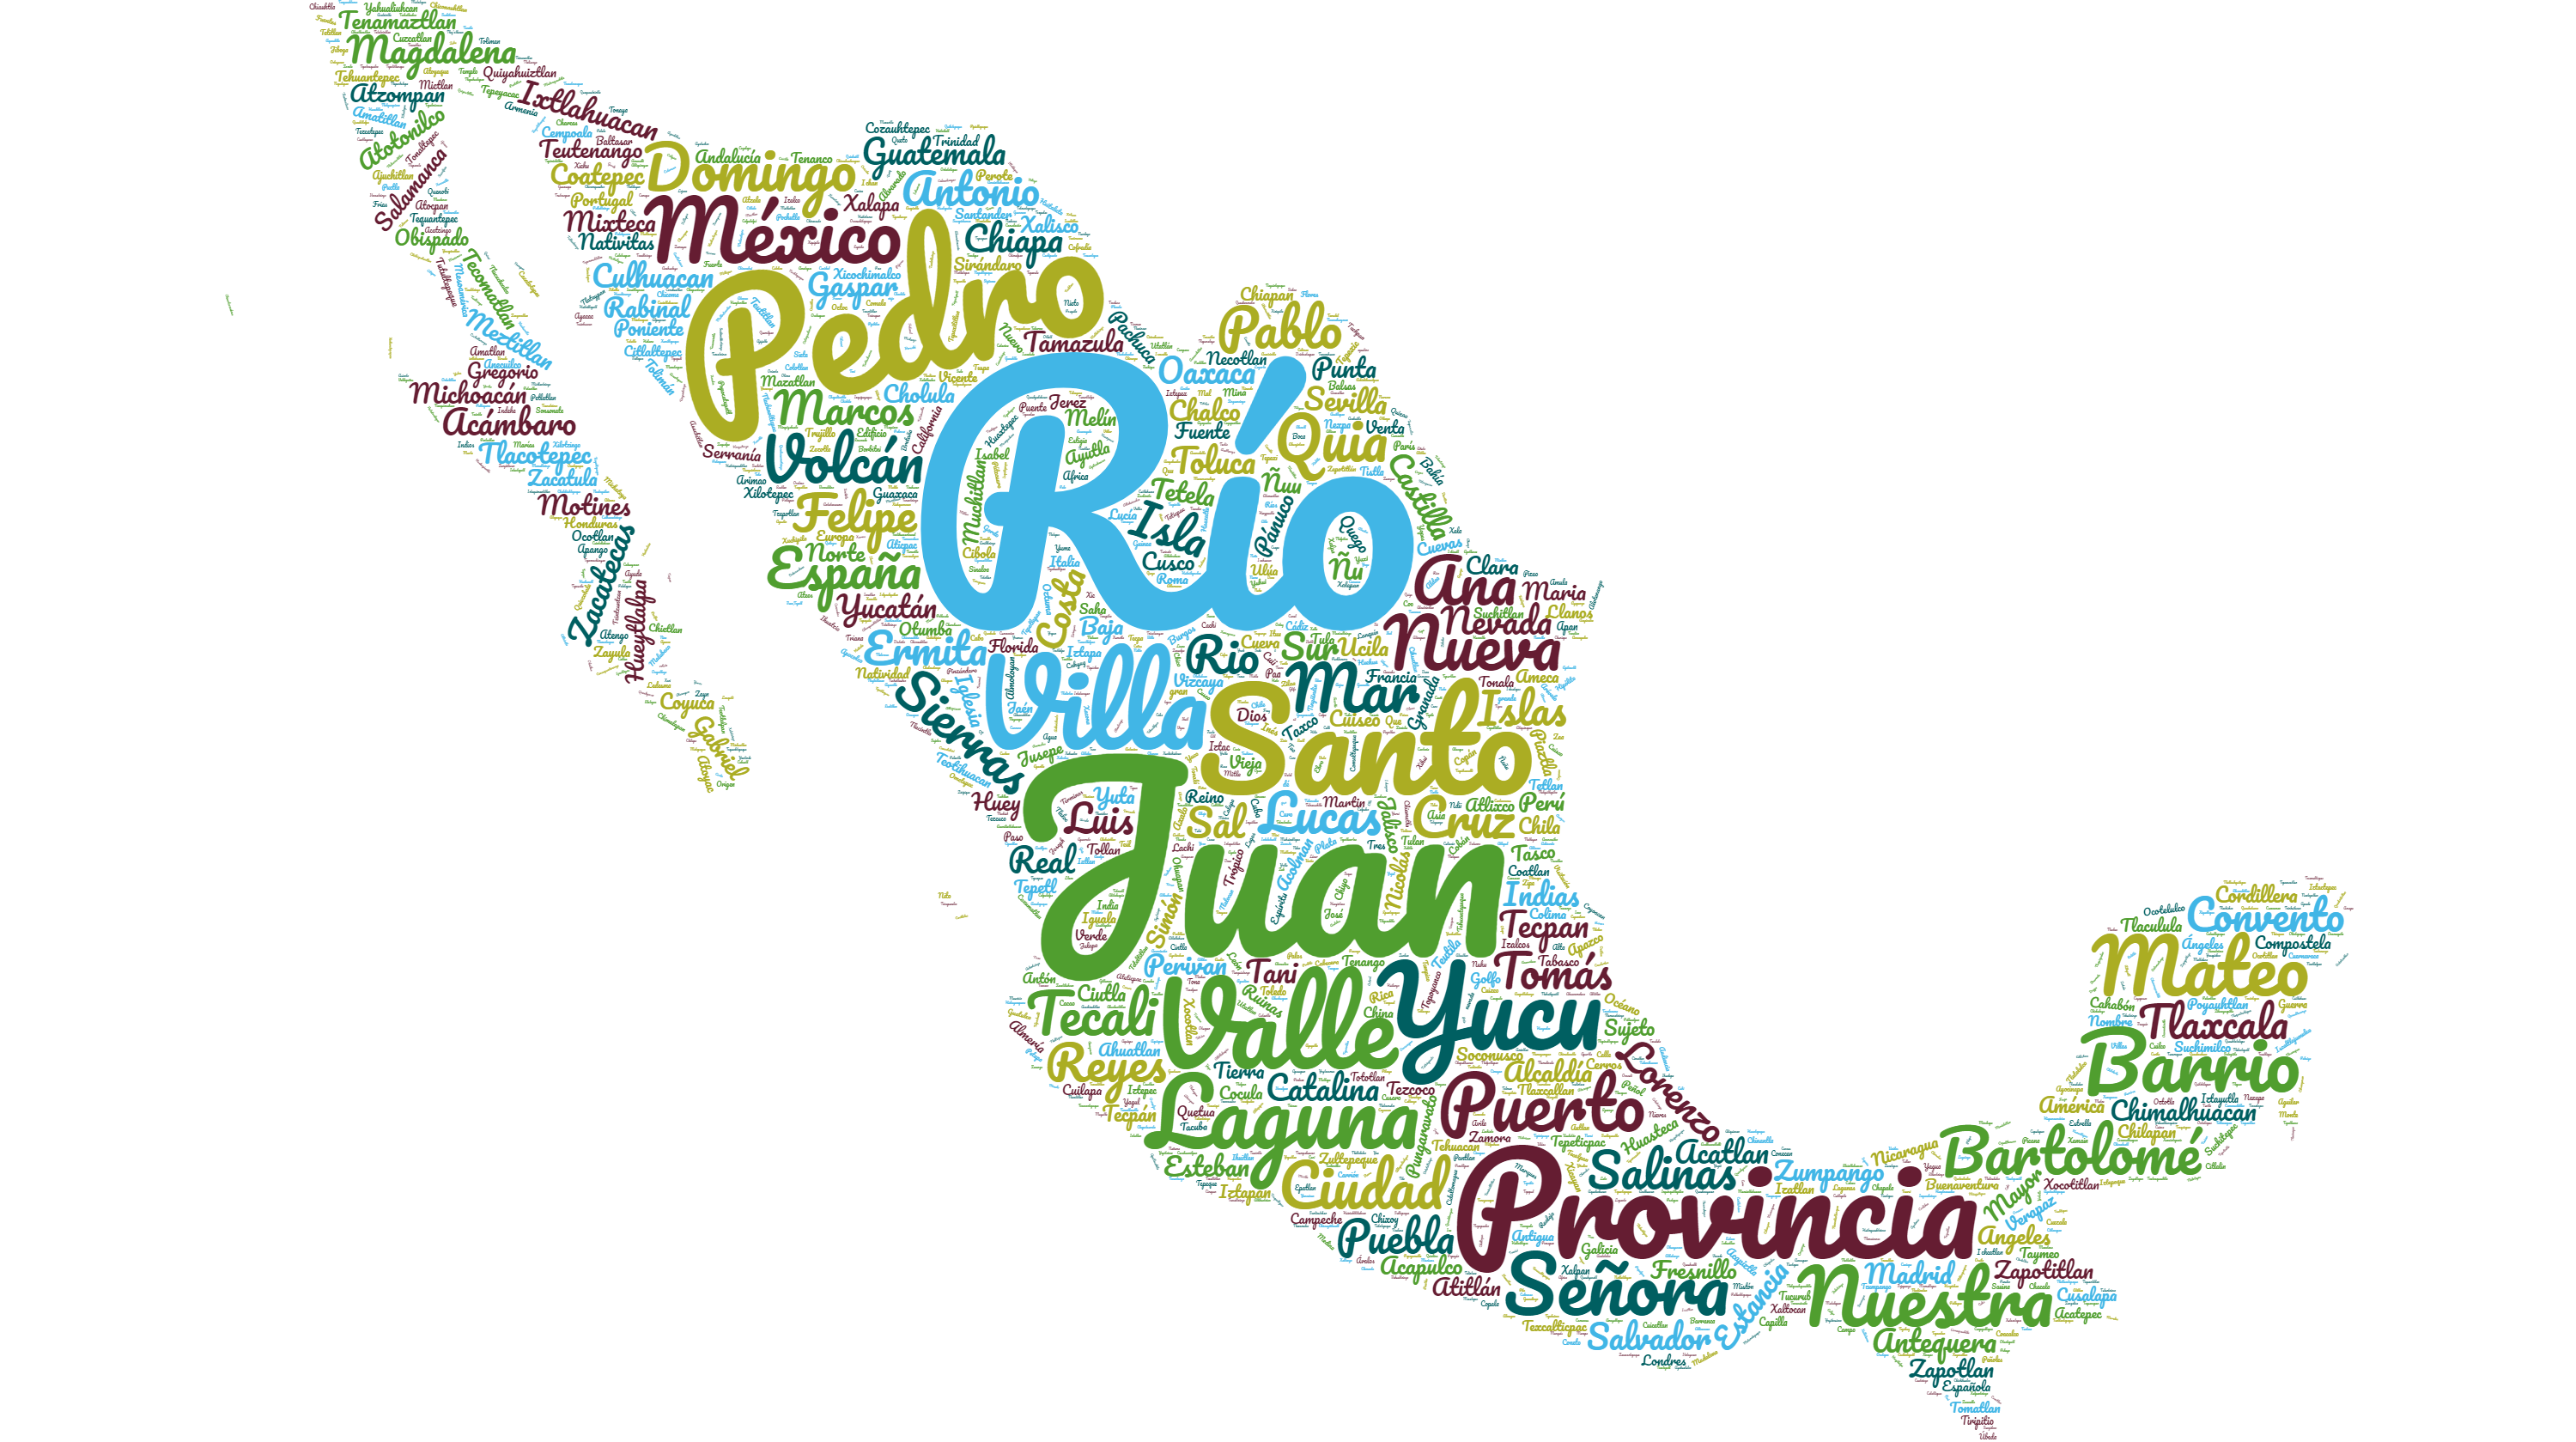 wordcloud comprised of toponyms mentioned in Rene Acuña's editions of the Relaciones Geograficas